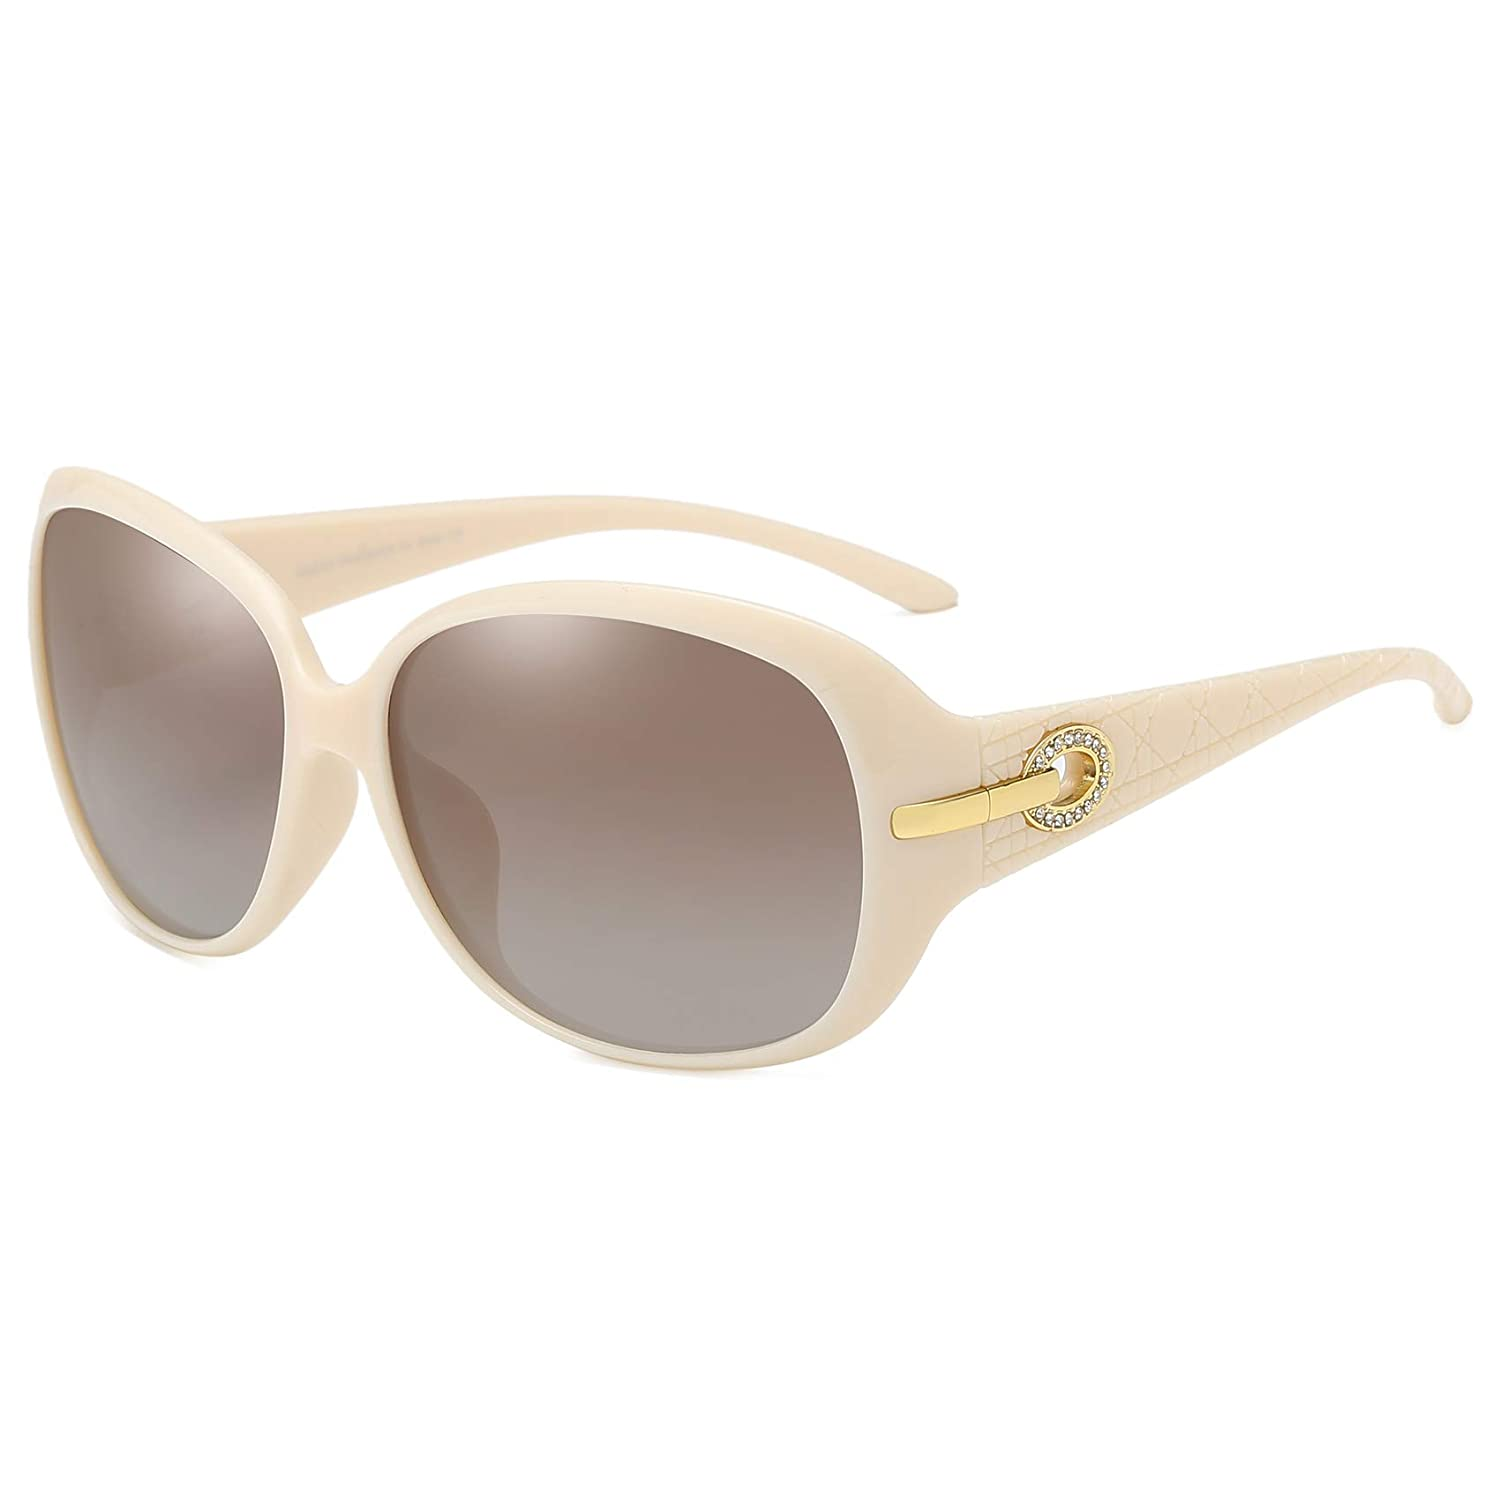 c732a7ce50 Amazon.com  DUCO Women s Classic Stylish Designer Oval Polarized Sunglasses  100% UV400 Protection 6214  Shoes